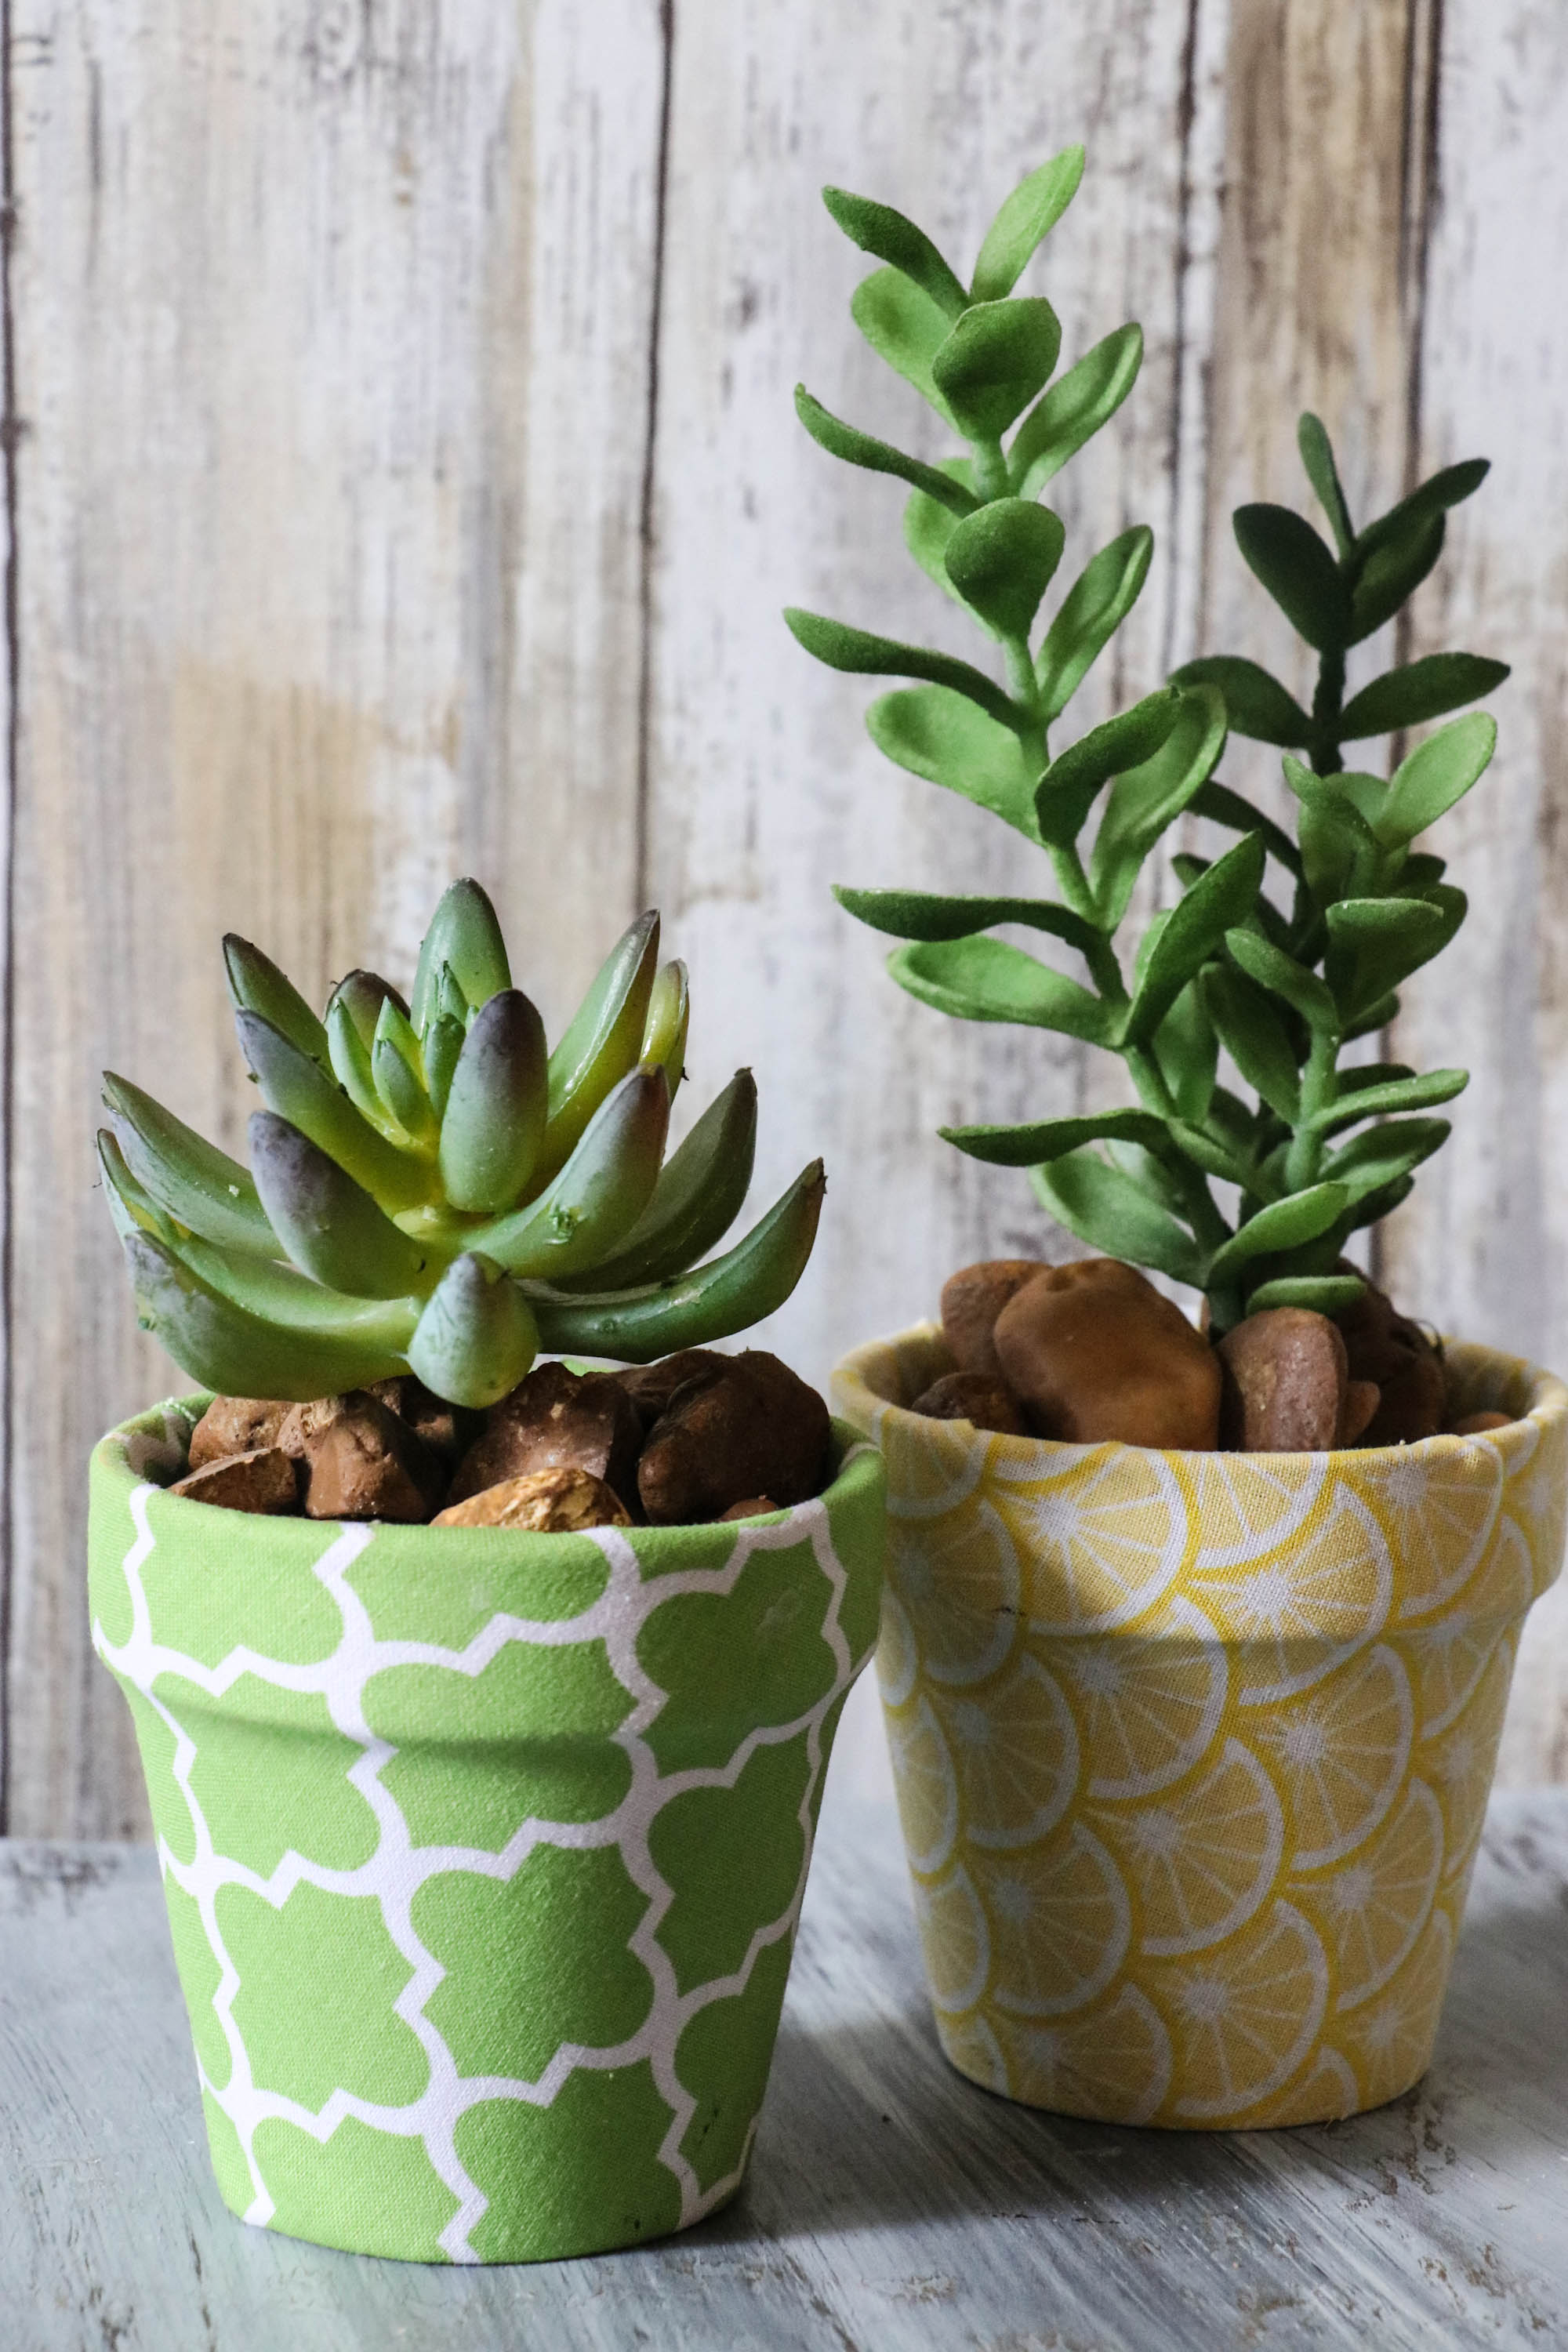 DIY Fabric Covered Flower Pots & DIY Fabric Covered Flower Pots with Dollar Store Materials - Re-Fabbed